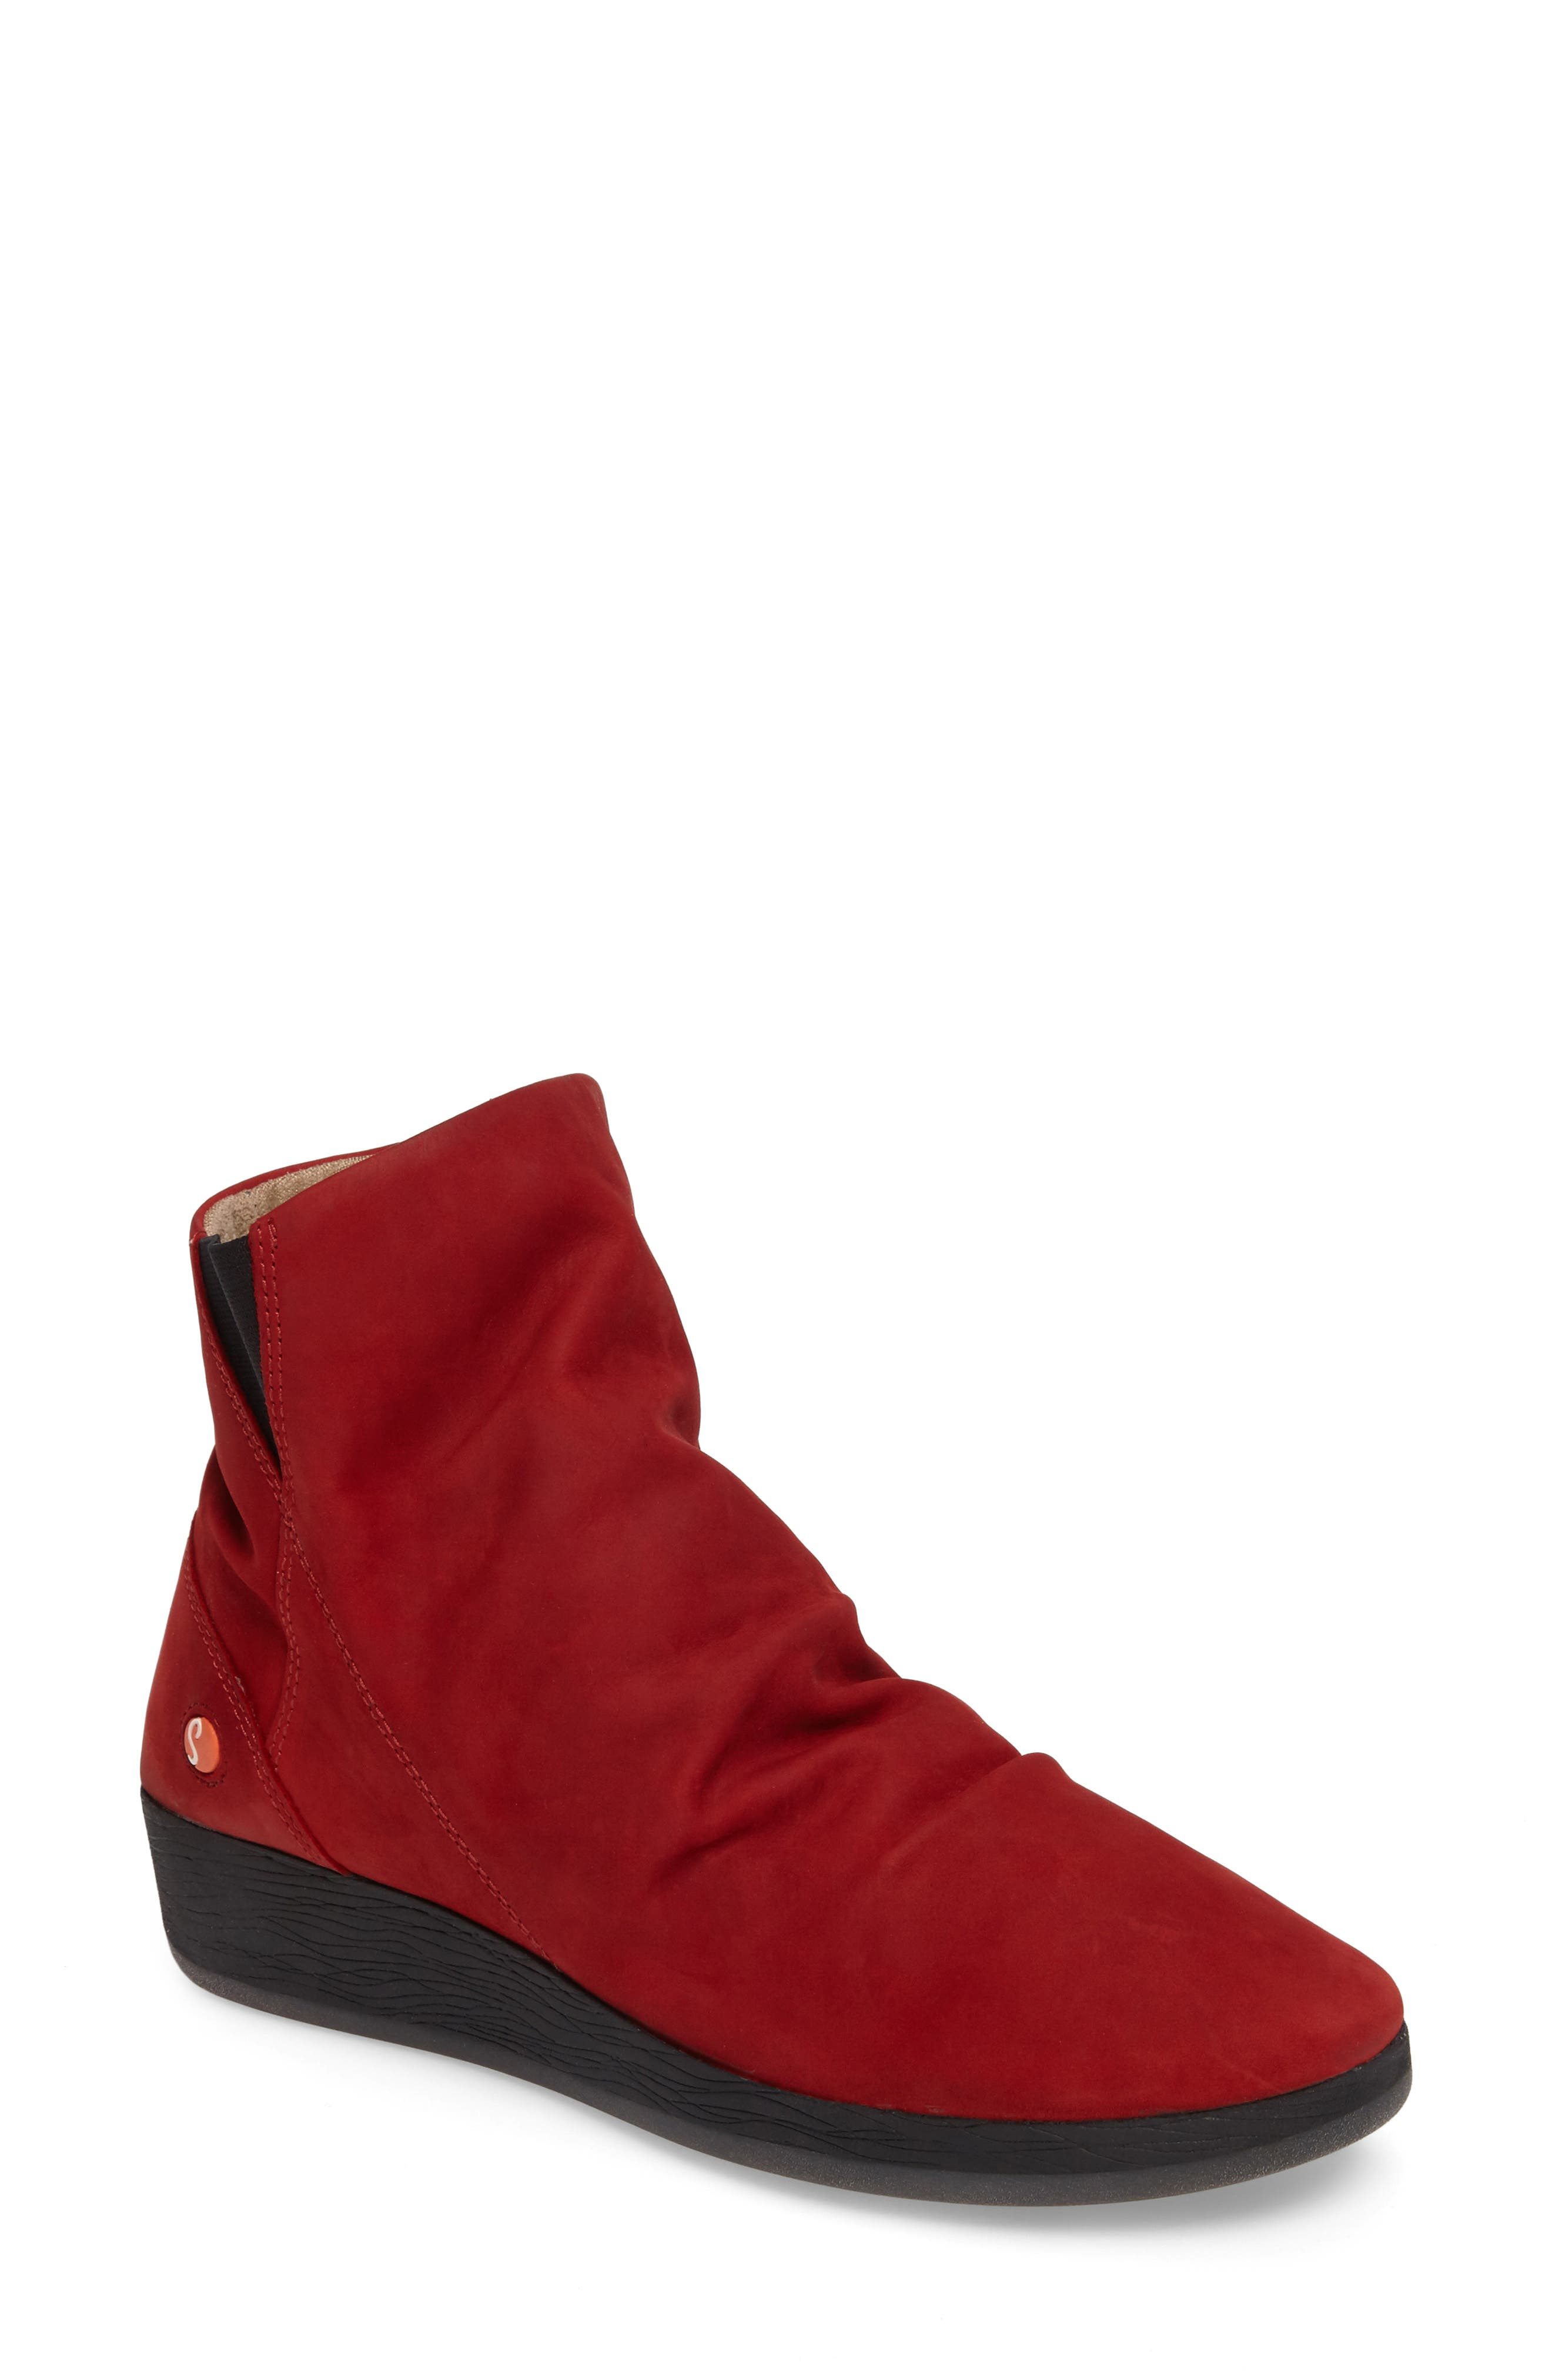 Ayo Low Wedge Bootie,                         Main,                         color, Red Nubuck Leather